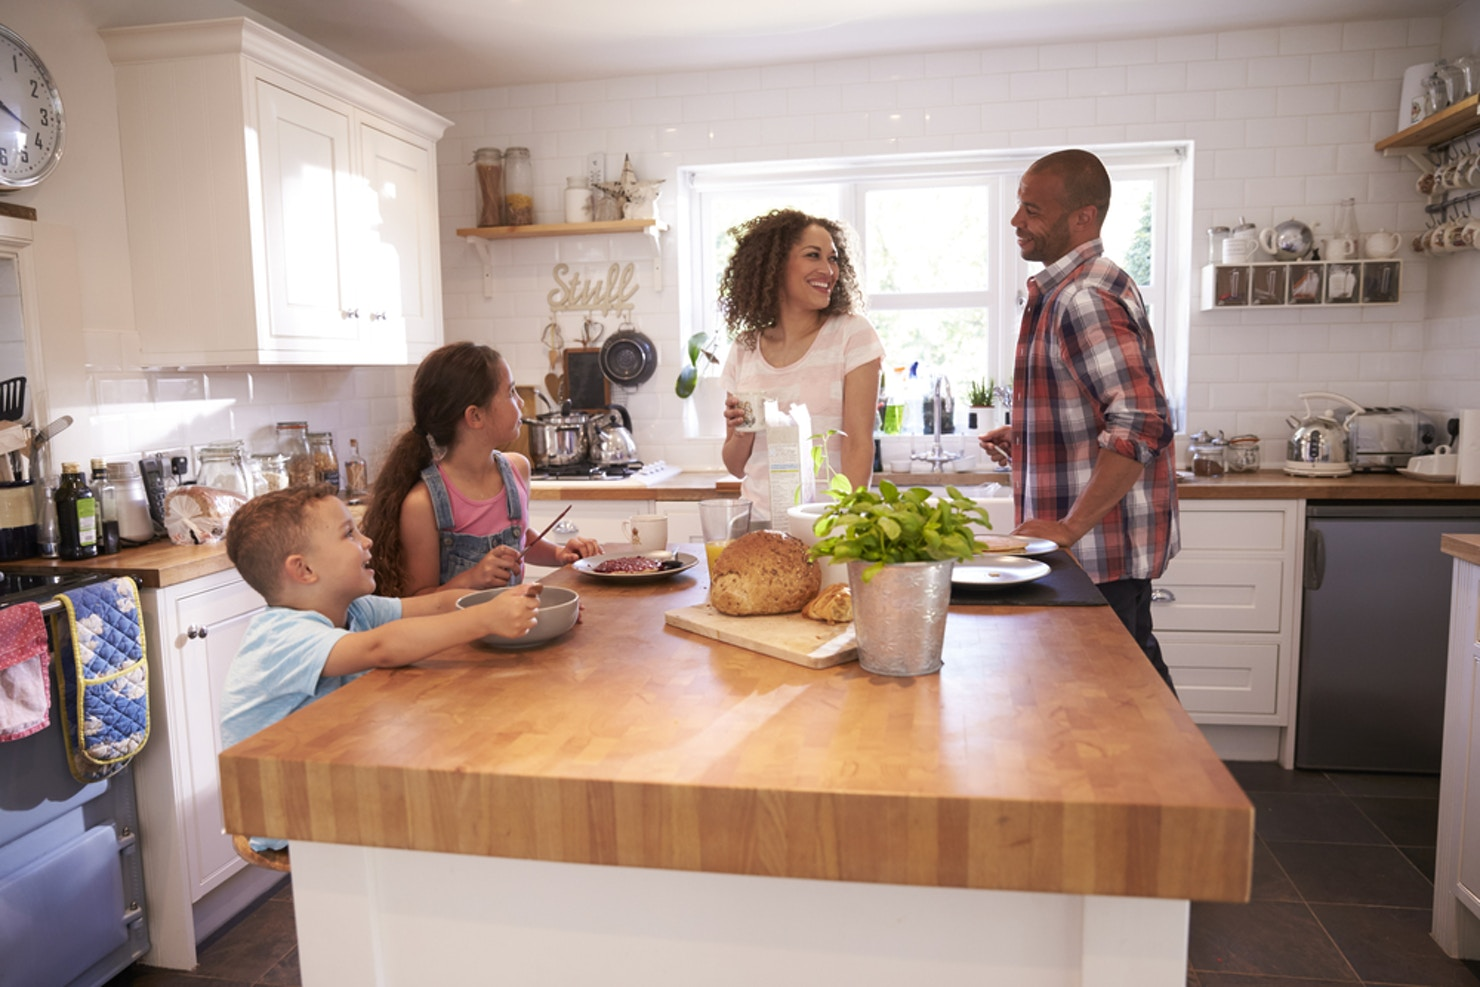 Consumer complacency increased around energy usage